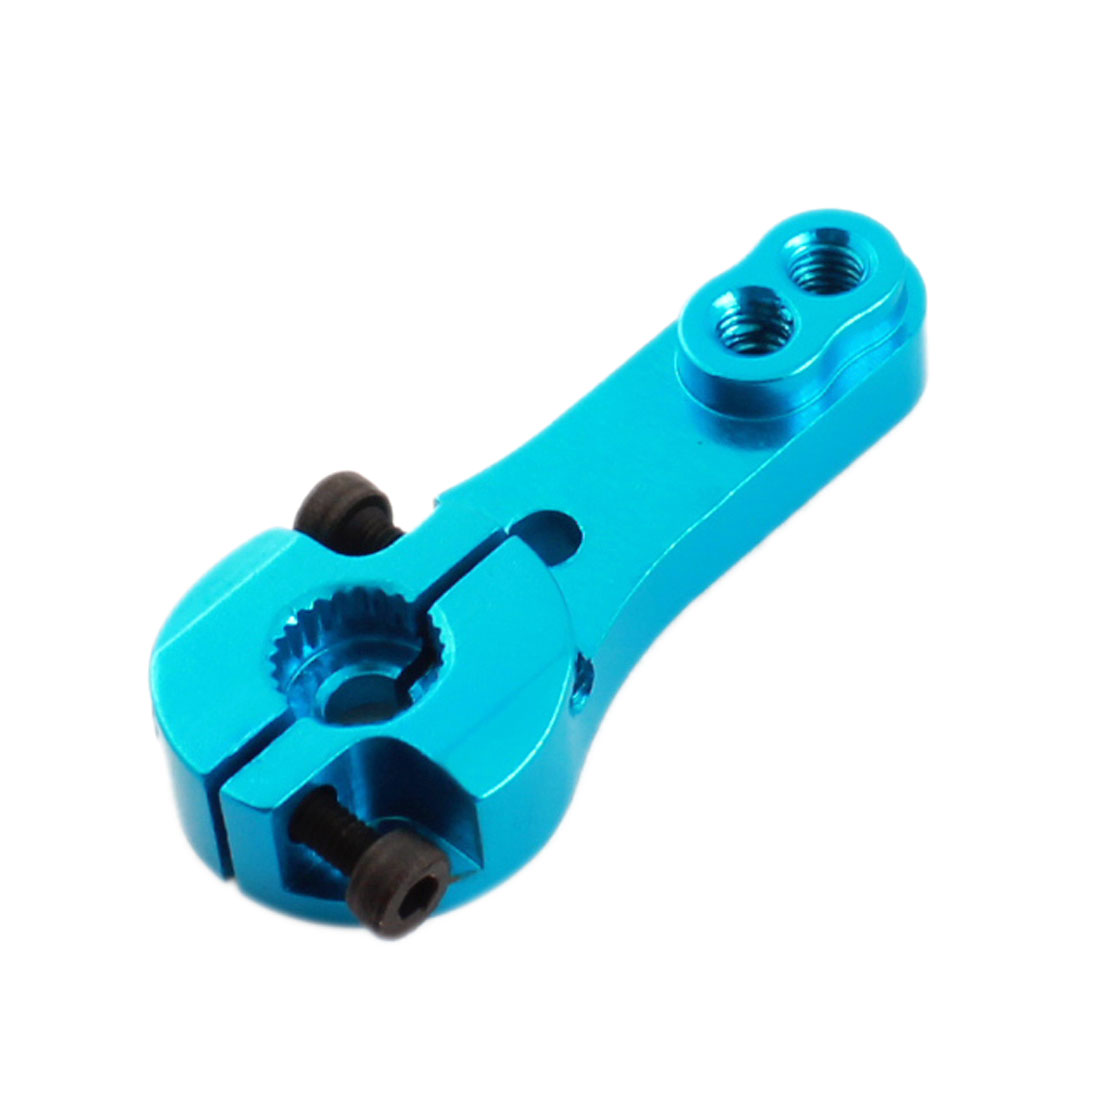 RC Model Airplane 25T MG995 S3003 Servo Horn Rocker Arm Half Size Blue